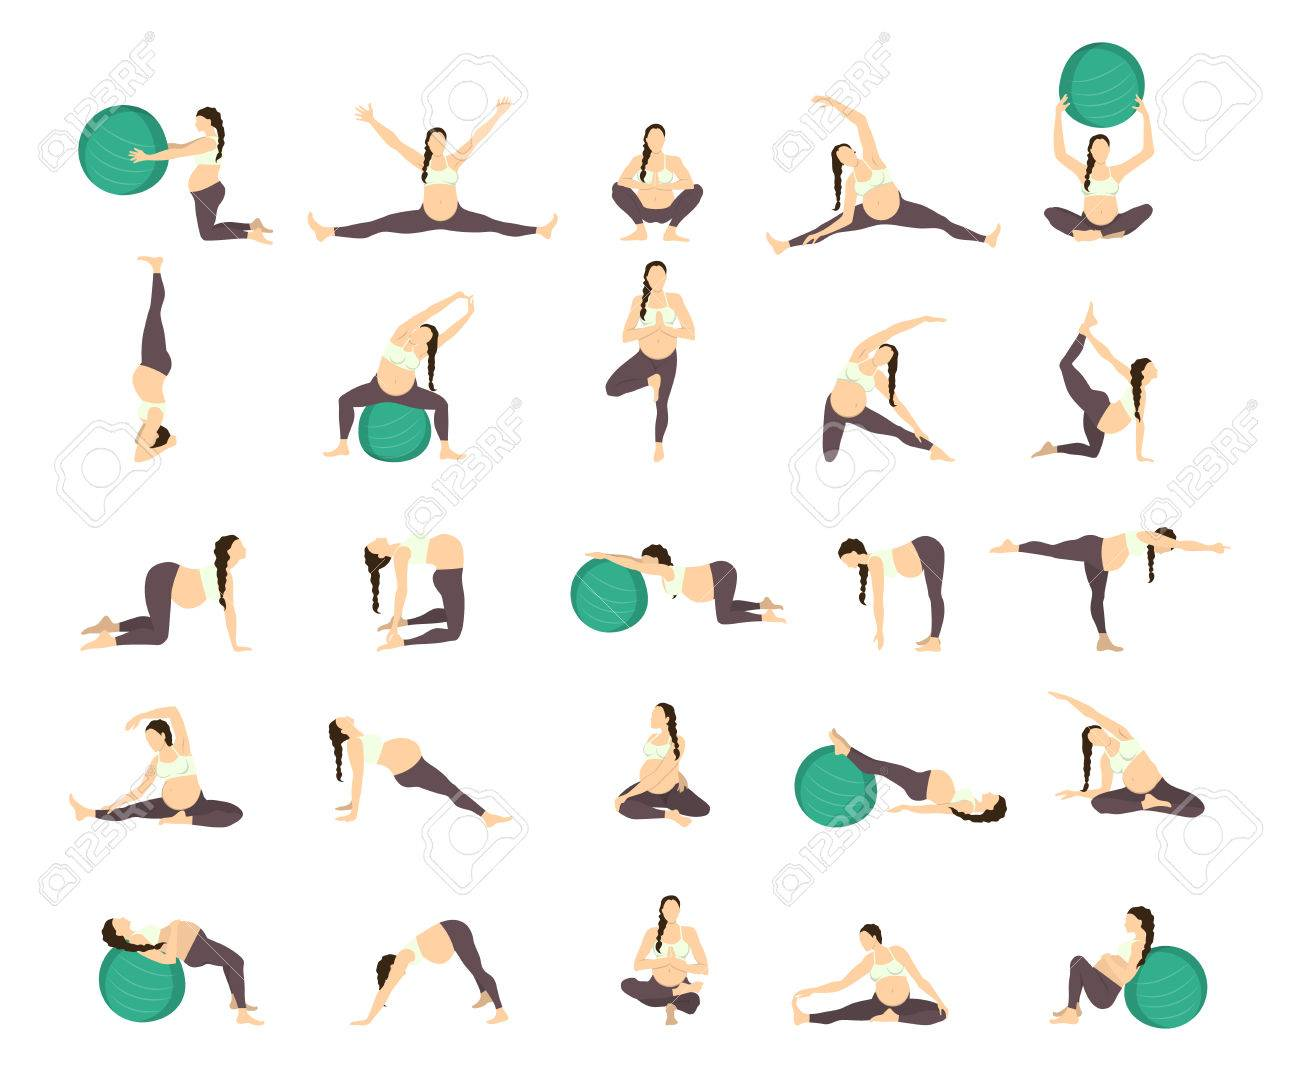 Workout For Pregnant Set Exercises With Fit Ball Yoga Training Royalty Free Cliparts Vectors And Stock Illustration Image 68826261